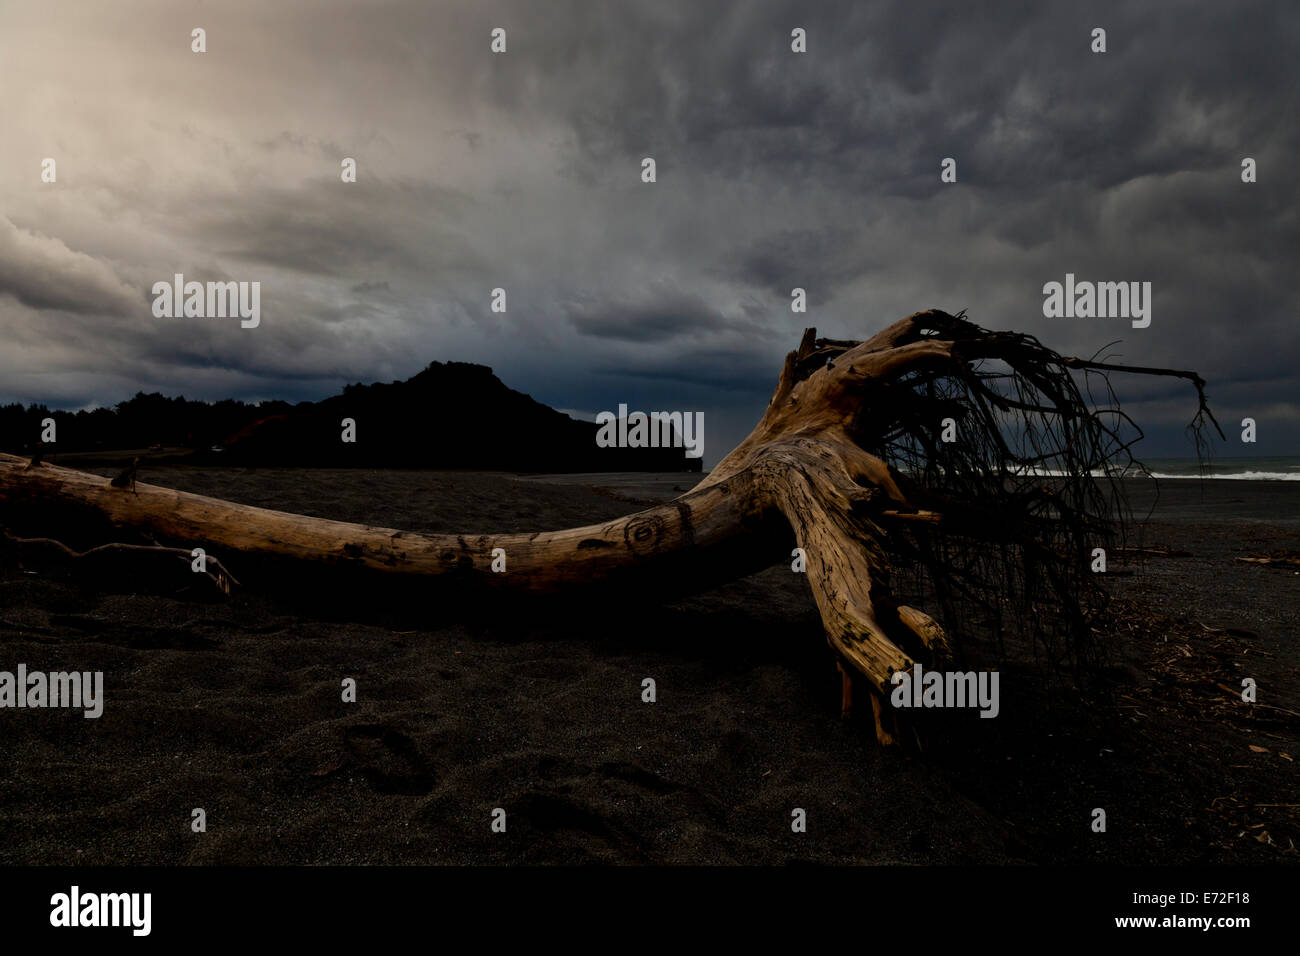 A tree trunk washed up on a beach near Port Orford, Oregon. - Stock Image